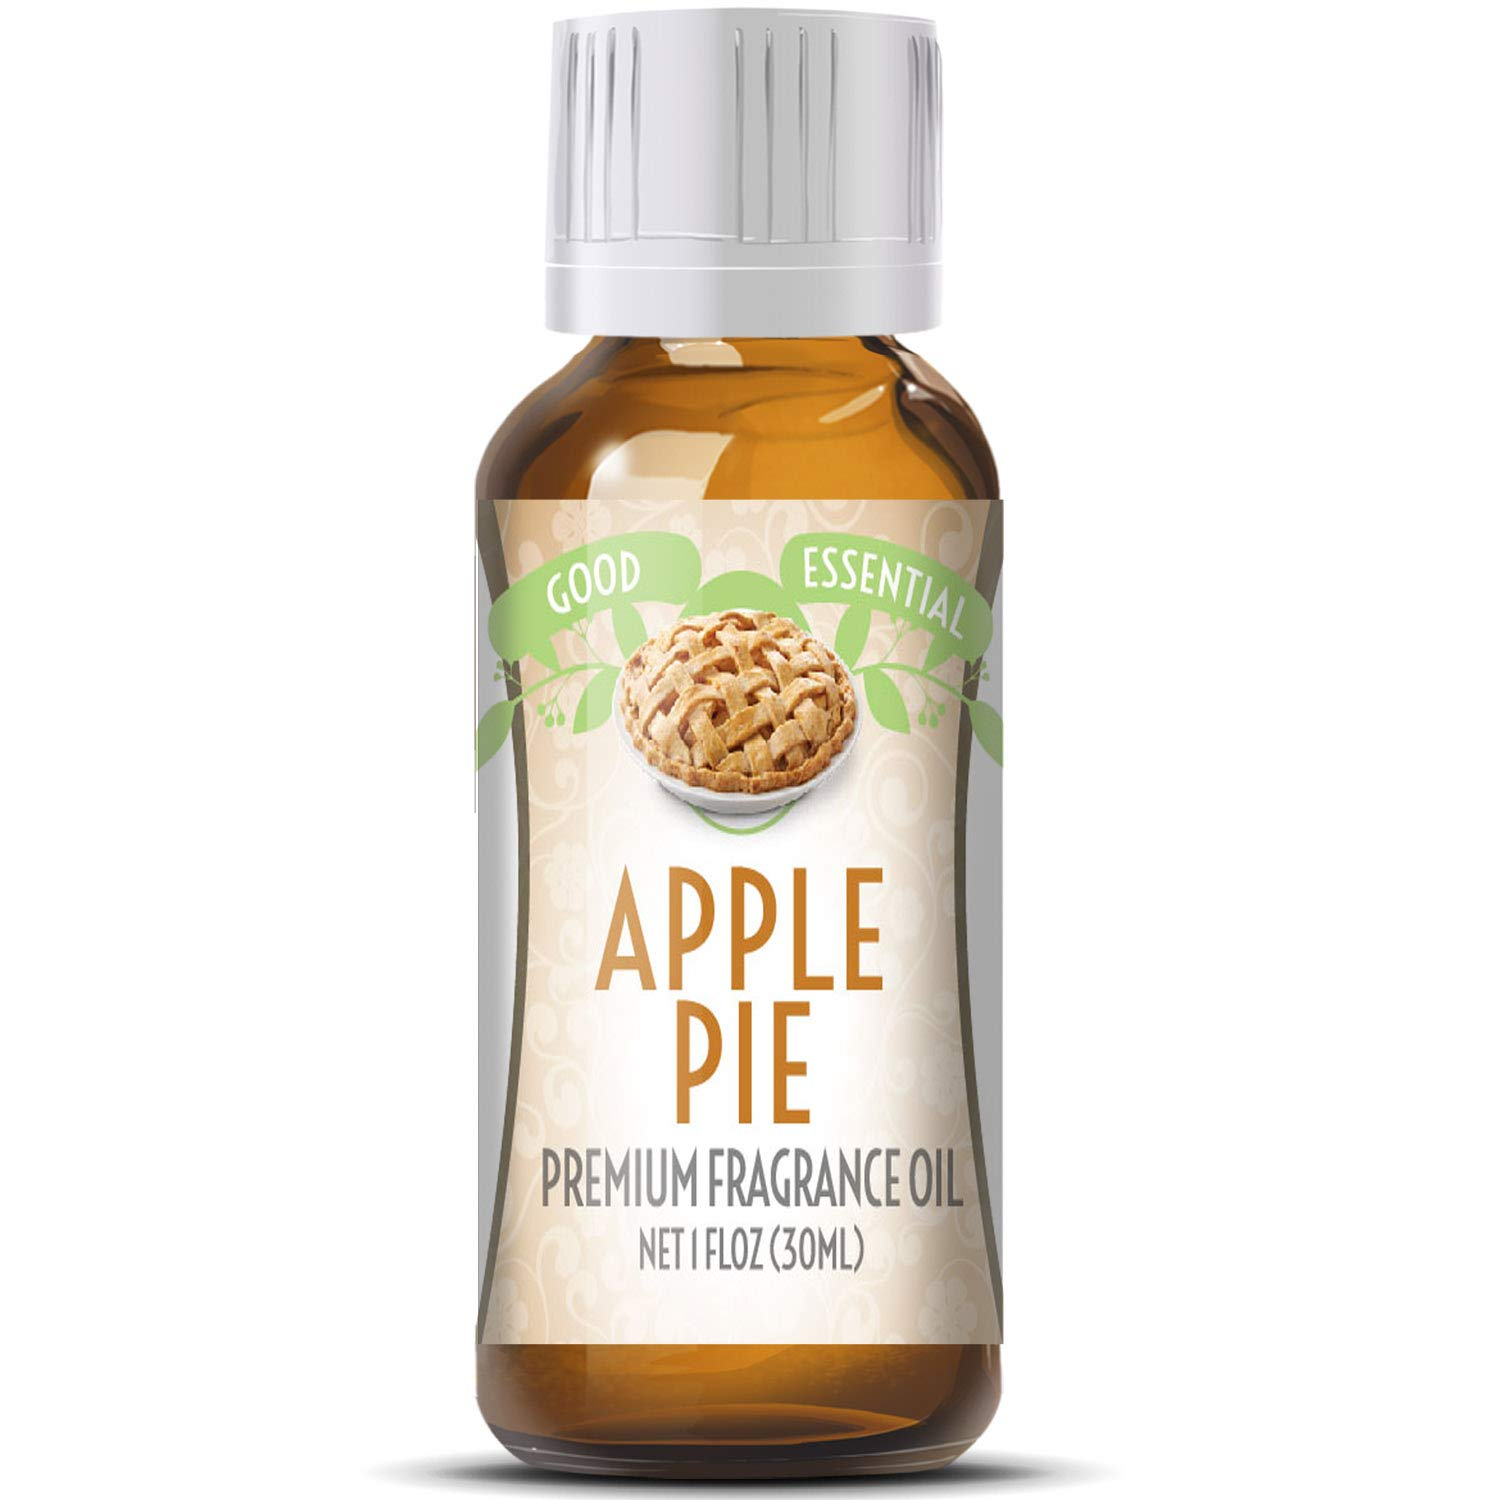 Apple Pie Scented Oil by Good Essential (Huge 1oz Bottle - Premium Grade Fragrance Oil) - Perfect for Aromatherapy, Soaps, Candles, Slime, Lotions, and More!